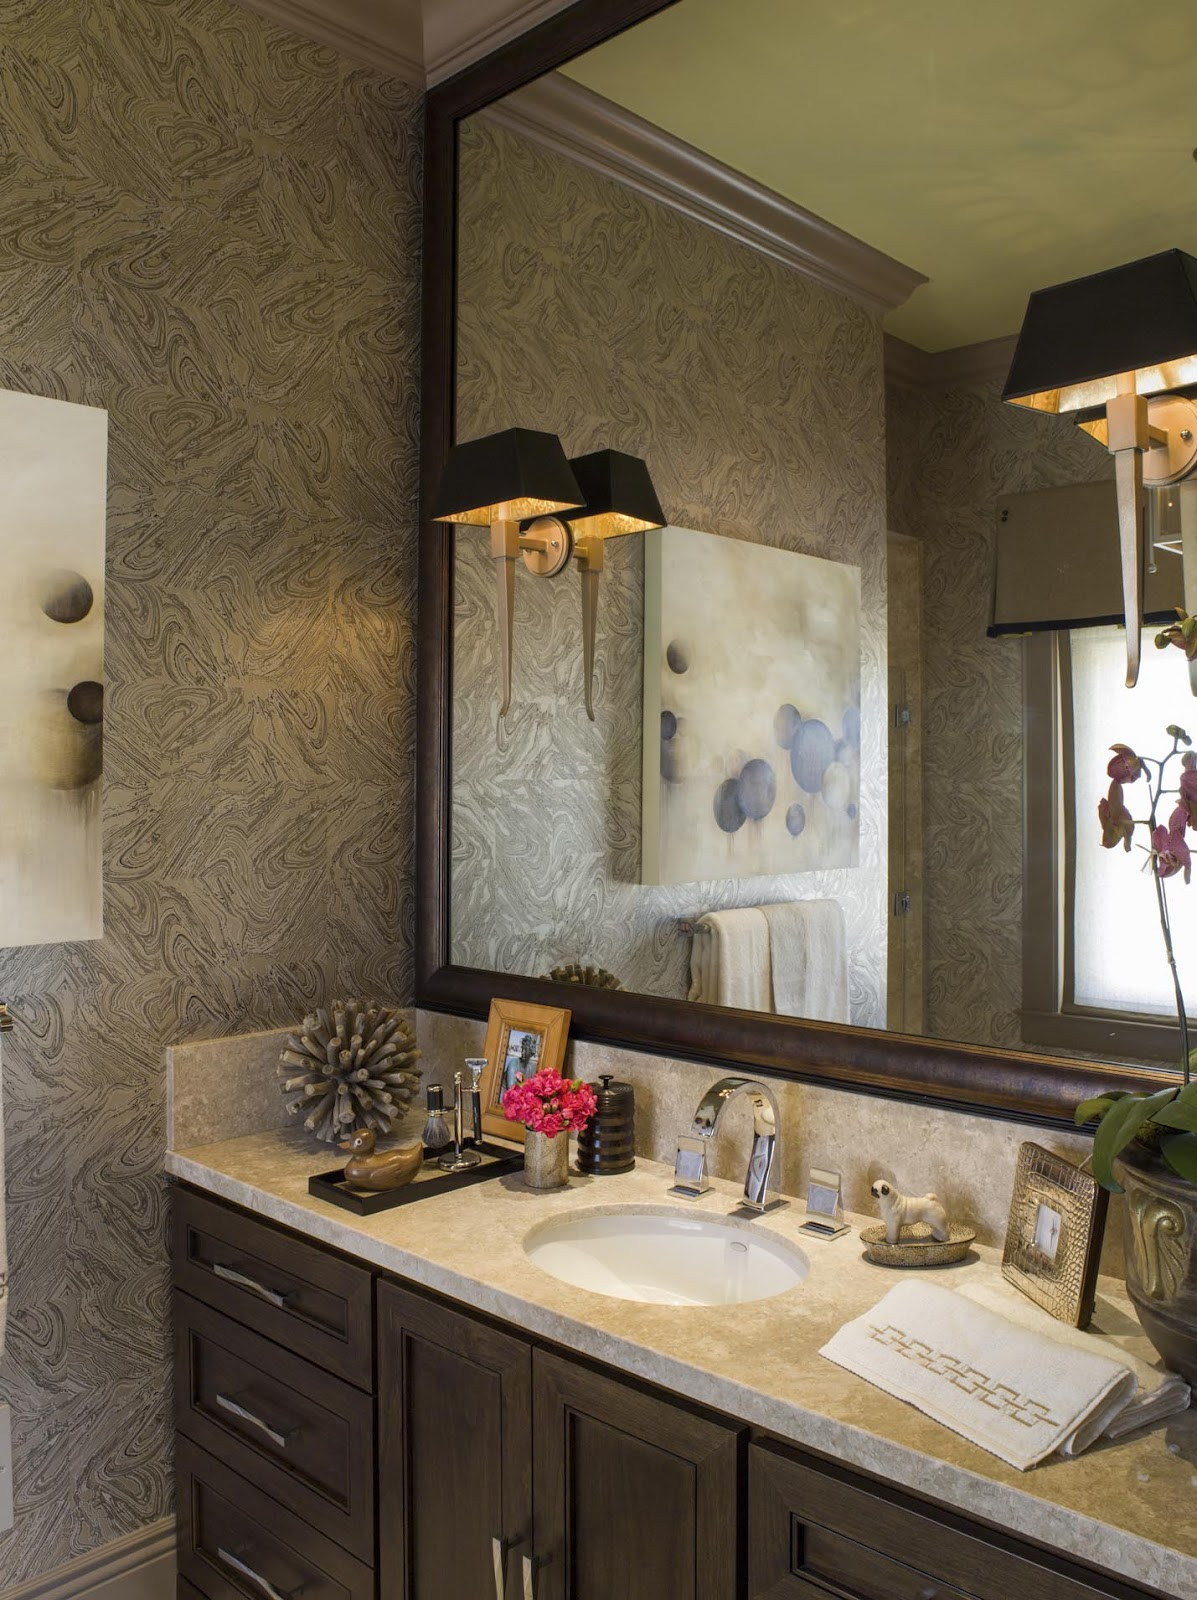 Bathroom wallpaper ideas bathroom wallpaper designs Bathroom art ideas